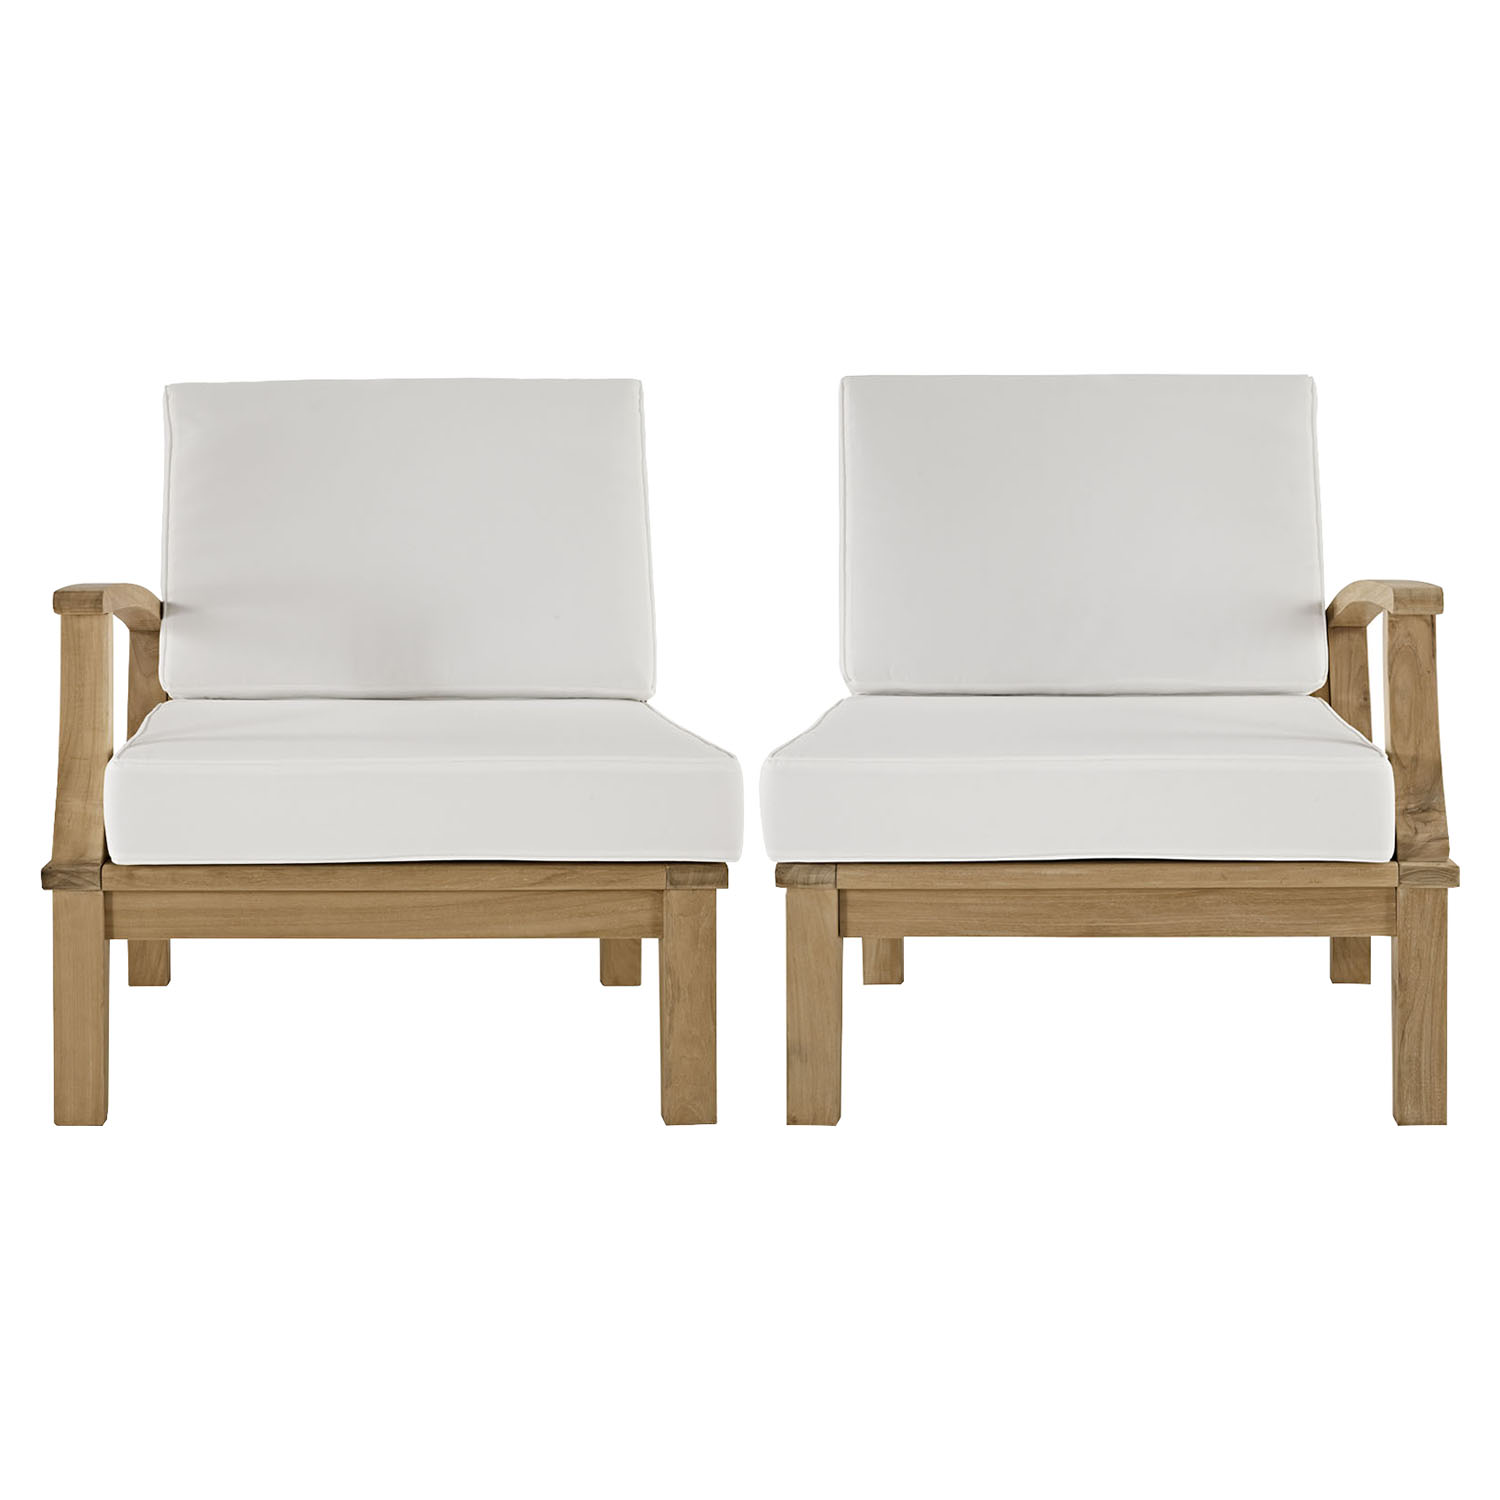 Marina 2 Pieces Outdoor Patio Teak Sofa Set - Natural White - EEI-1822-NAT-WHI-SET